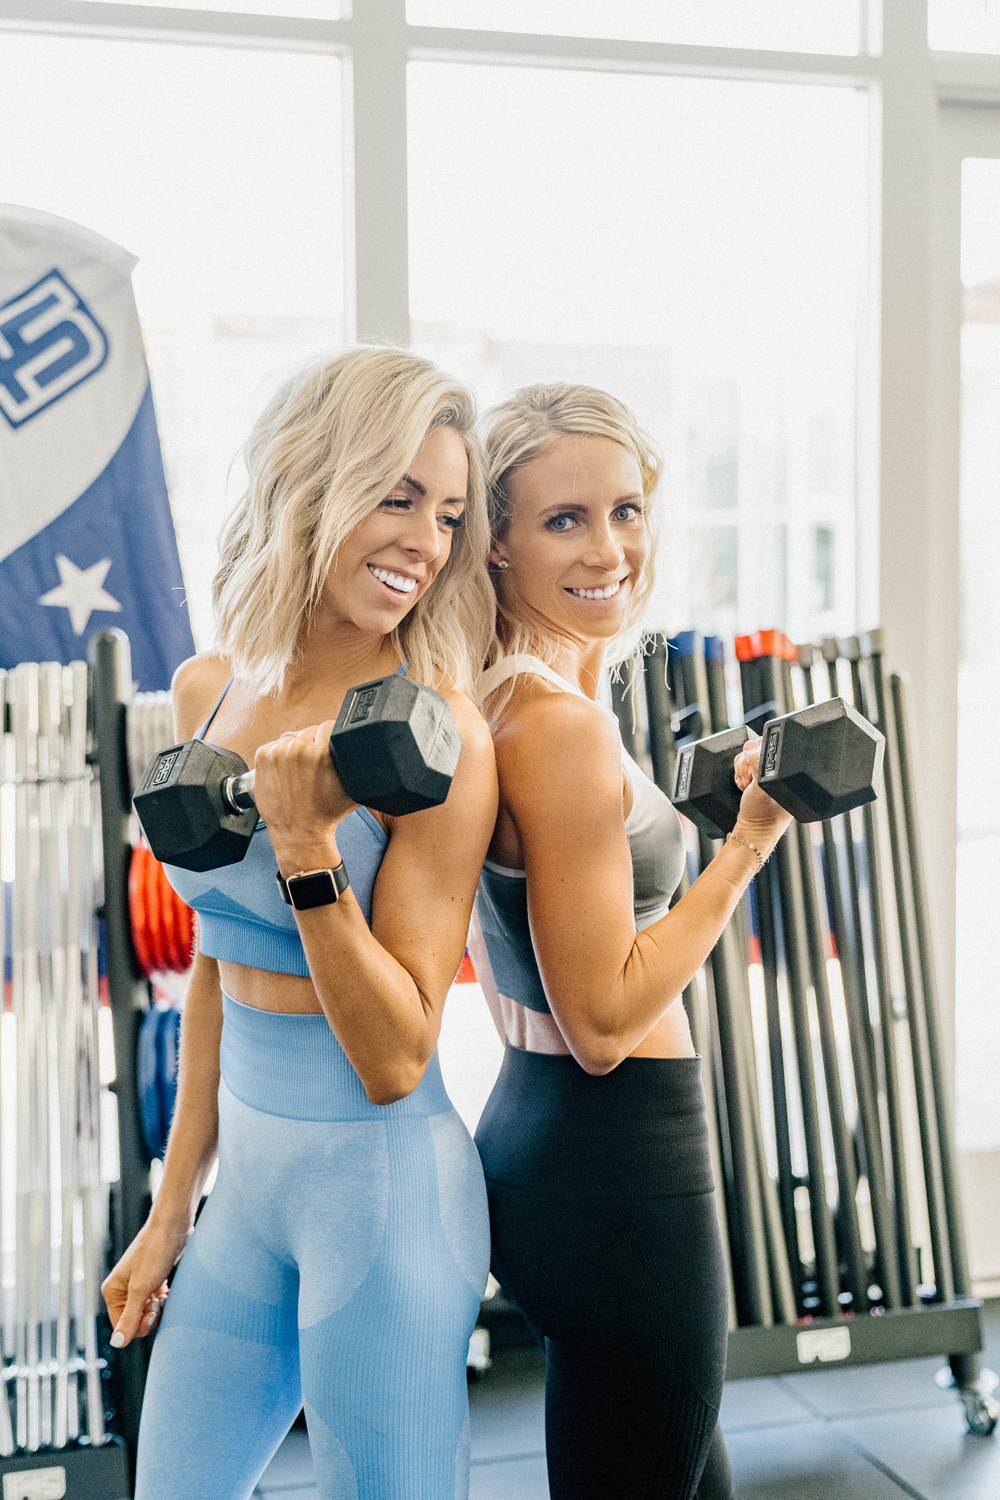 kailee wright savvit fit workout gear